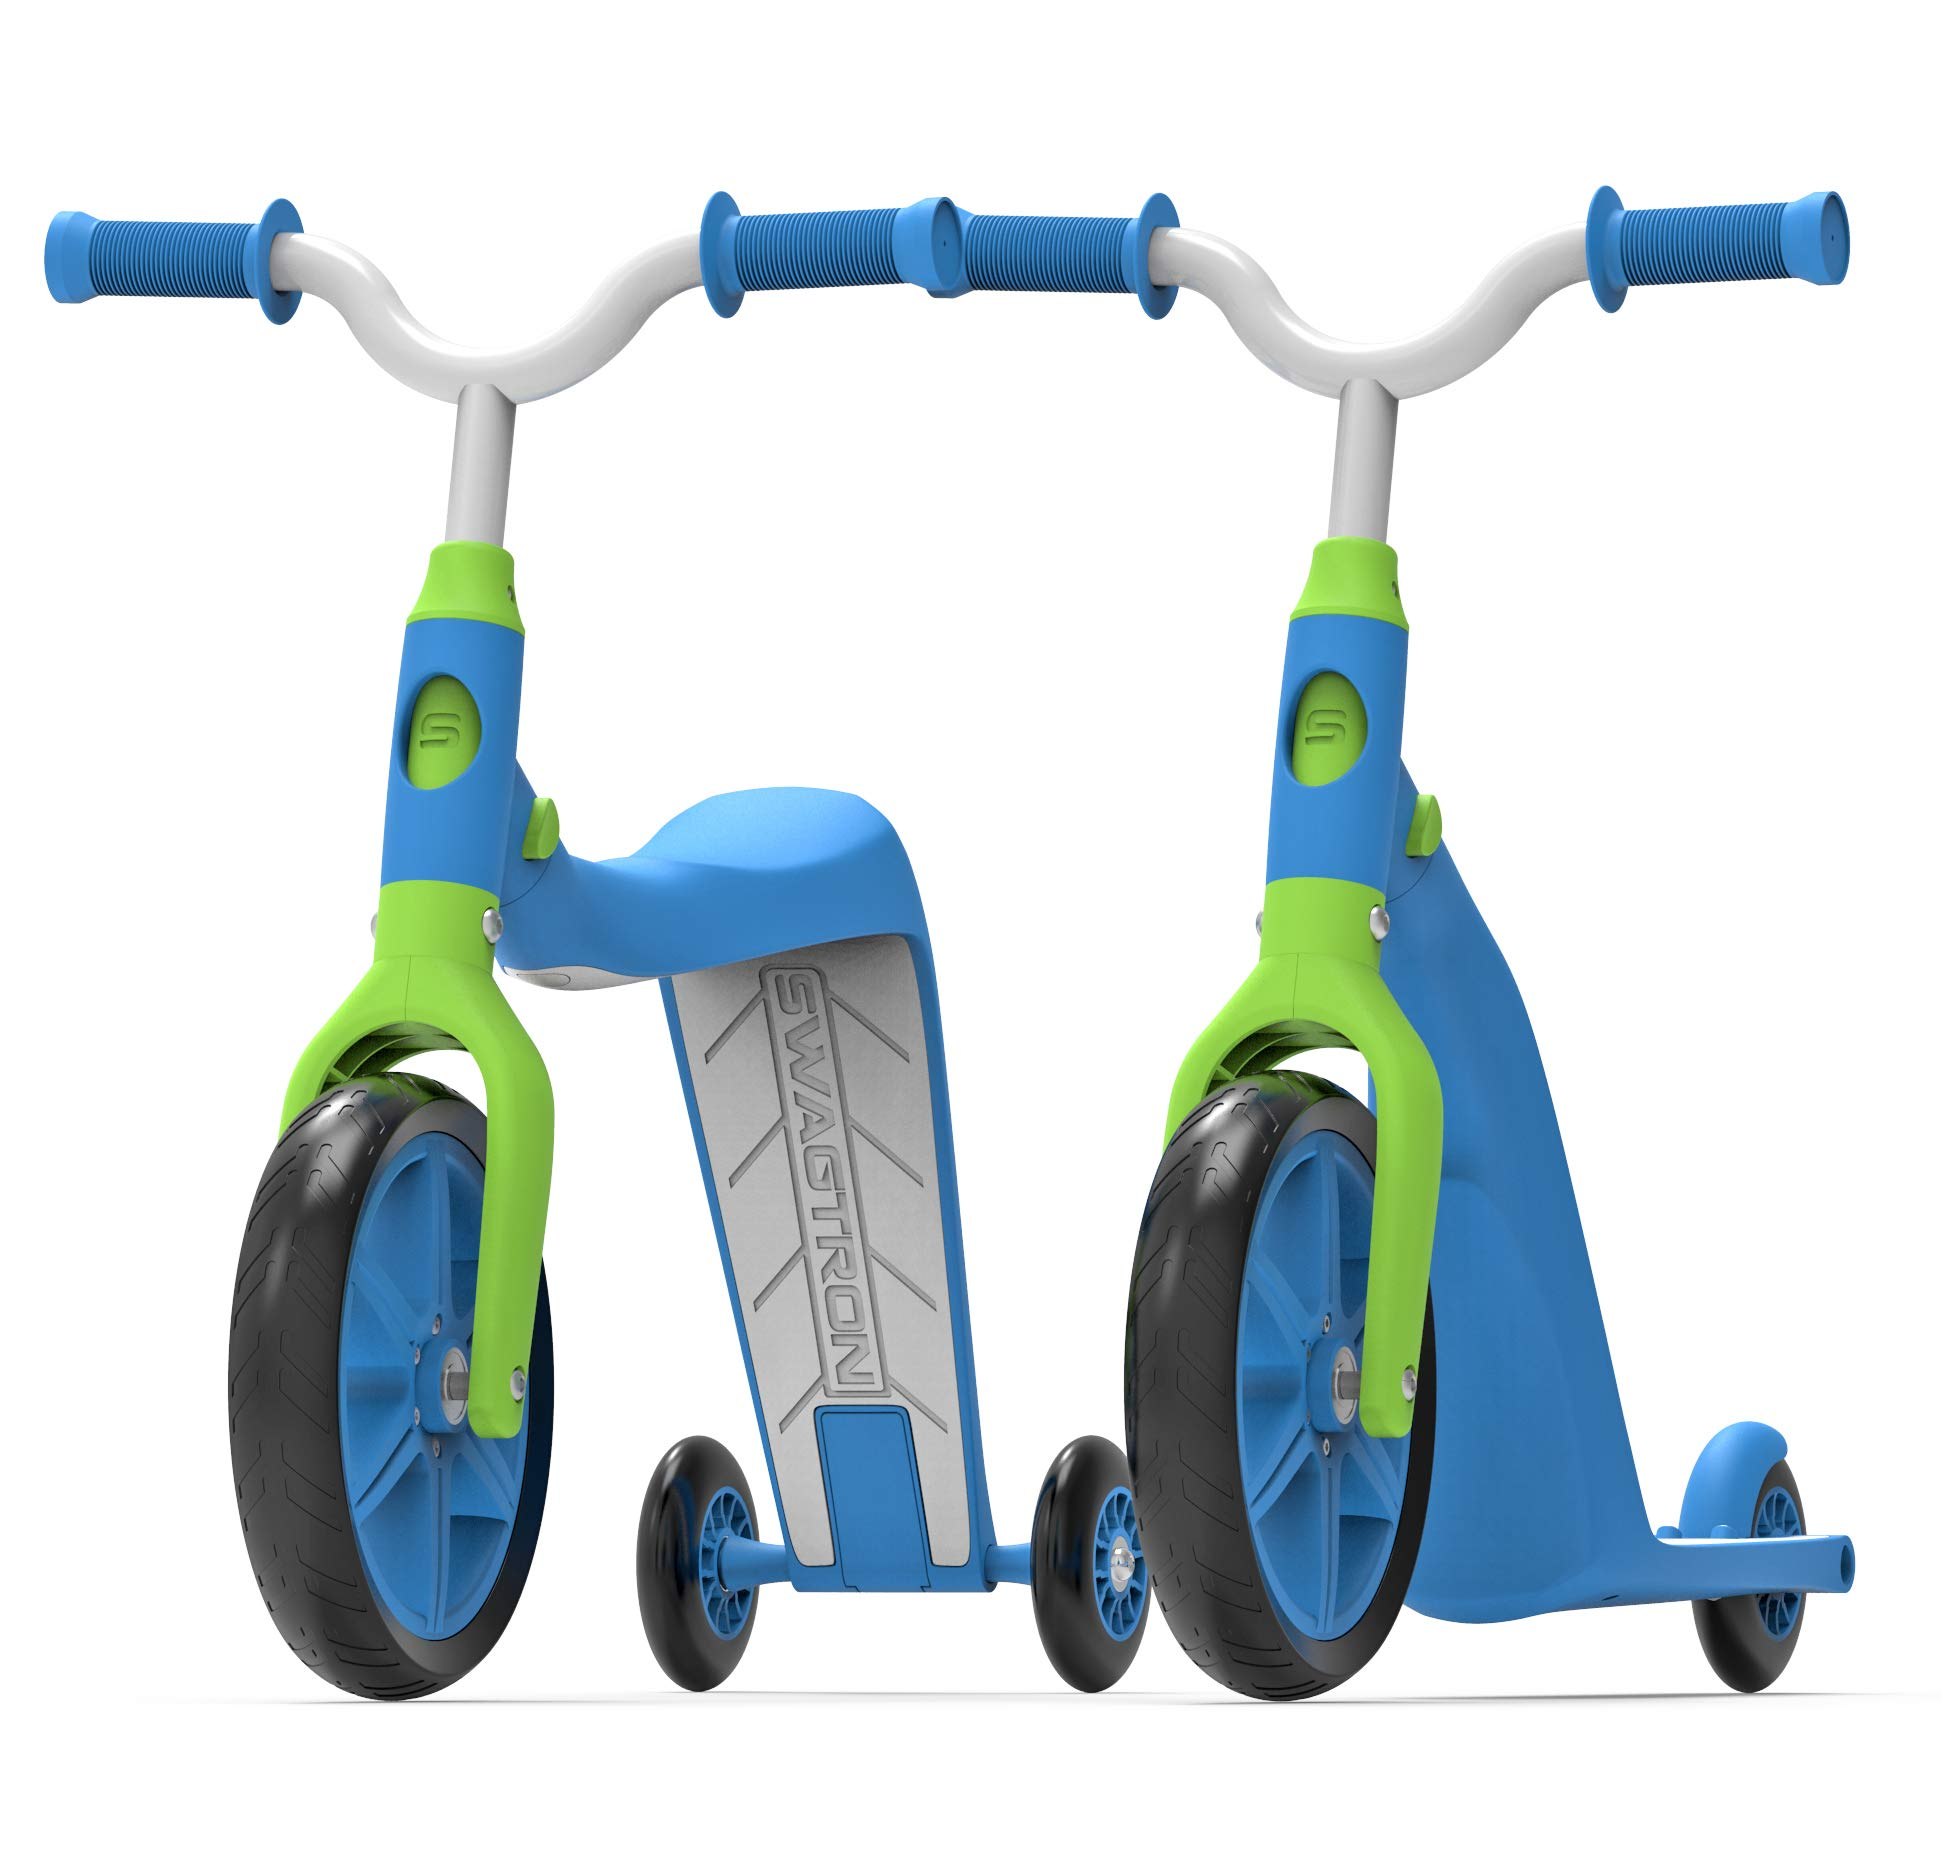 Swagtron K6 Toddler Scooter, Convertible 4-in-1 Ride-On Balance Trike & Training Bike for 2-5 Year Olds - ASTM F963 Certified (Blue)... by Swagtron